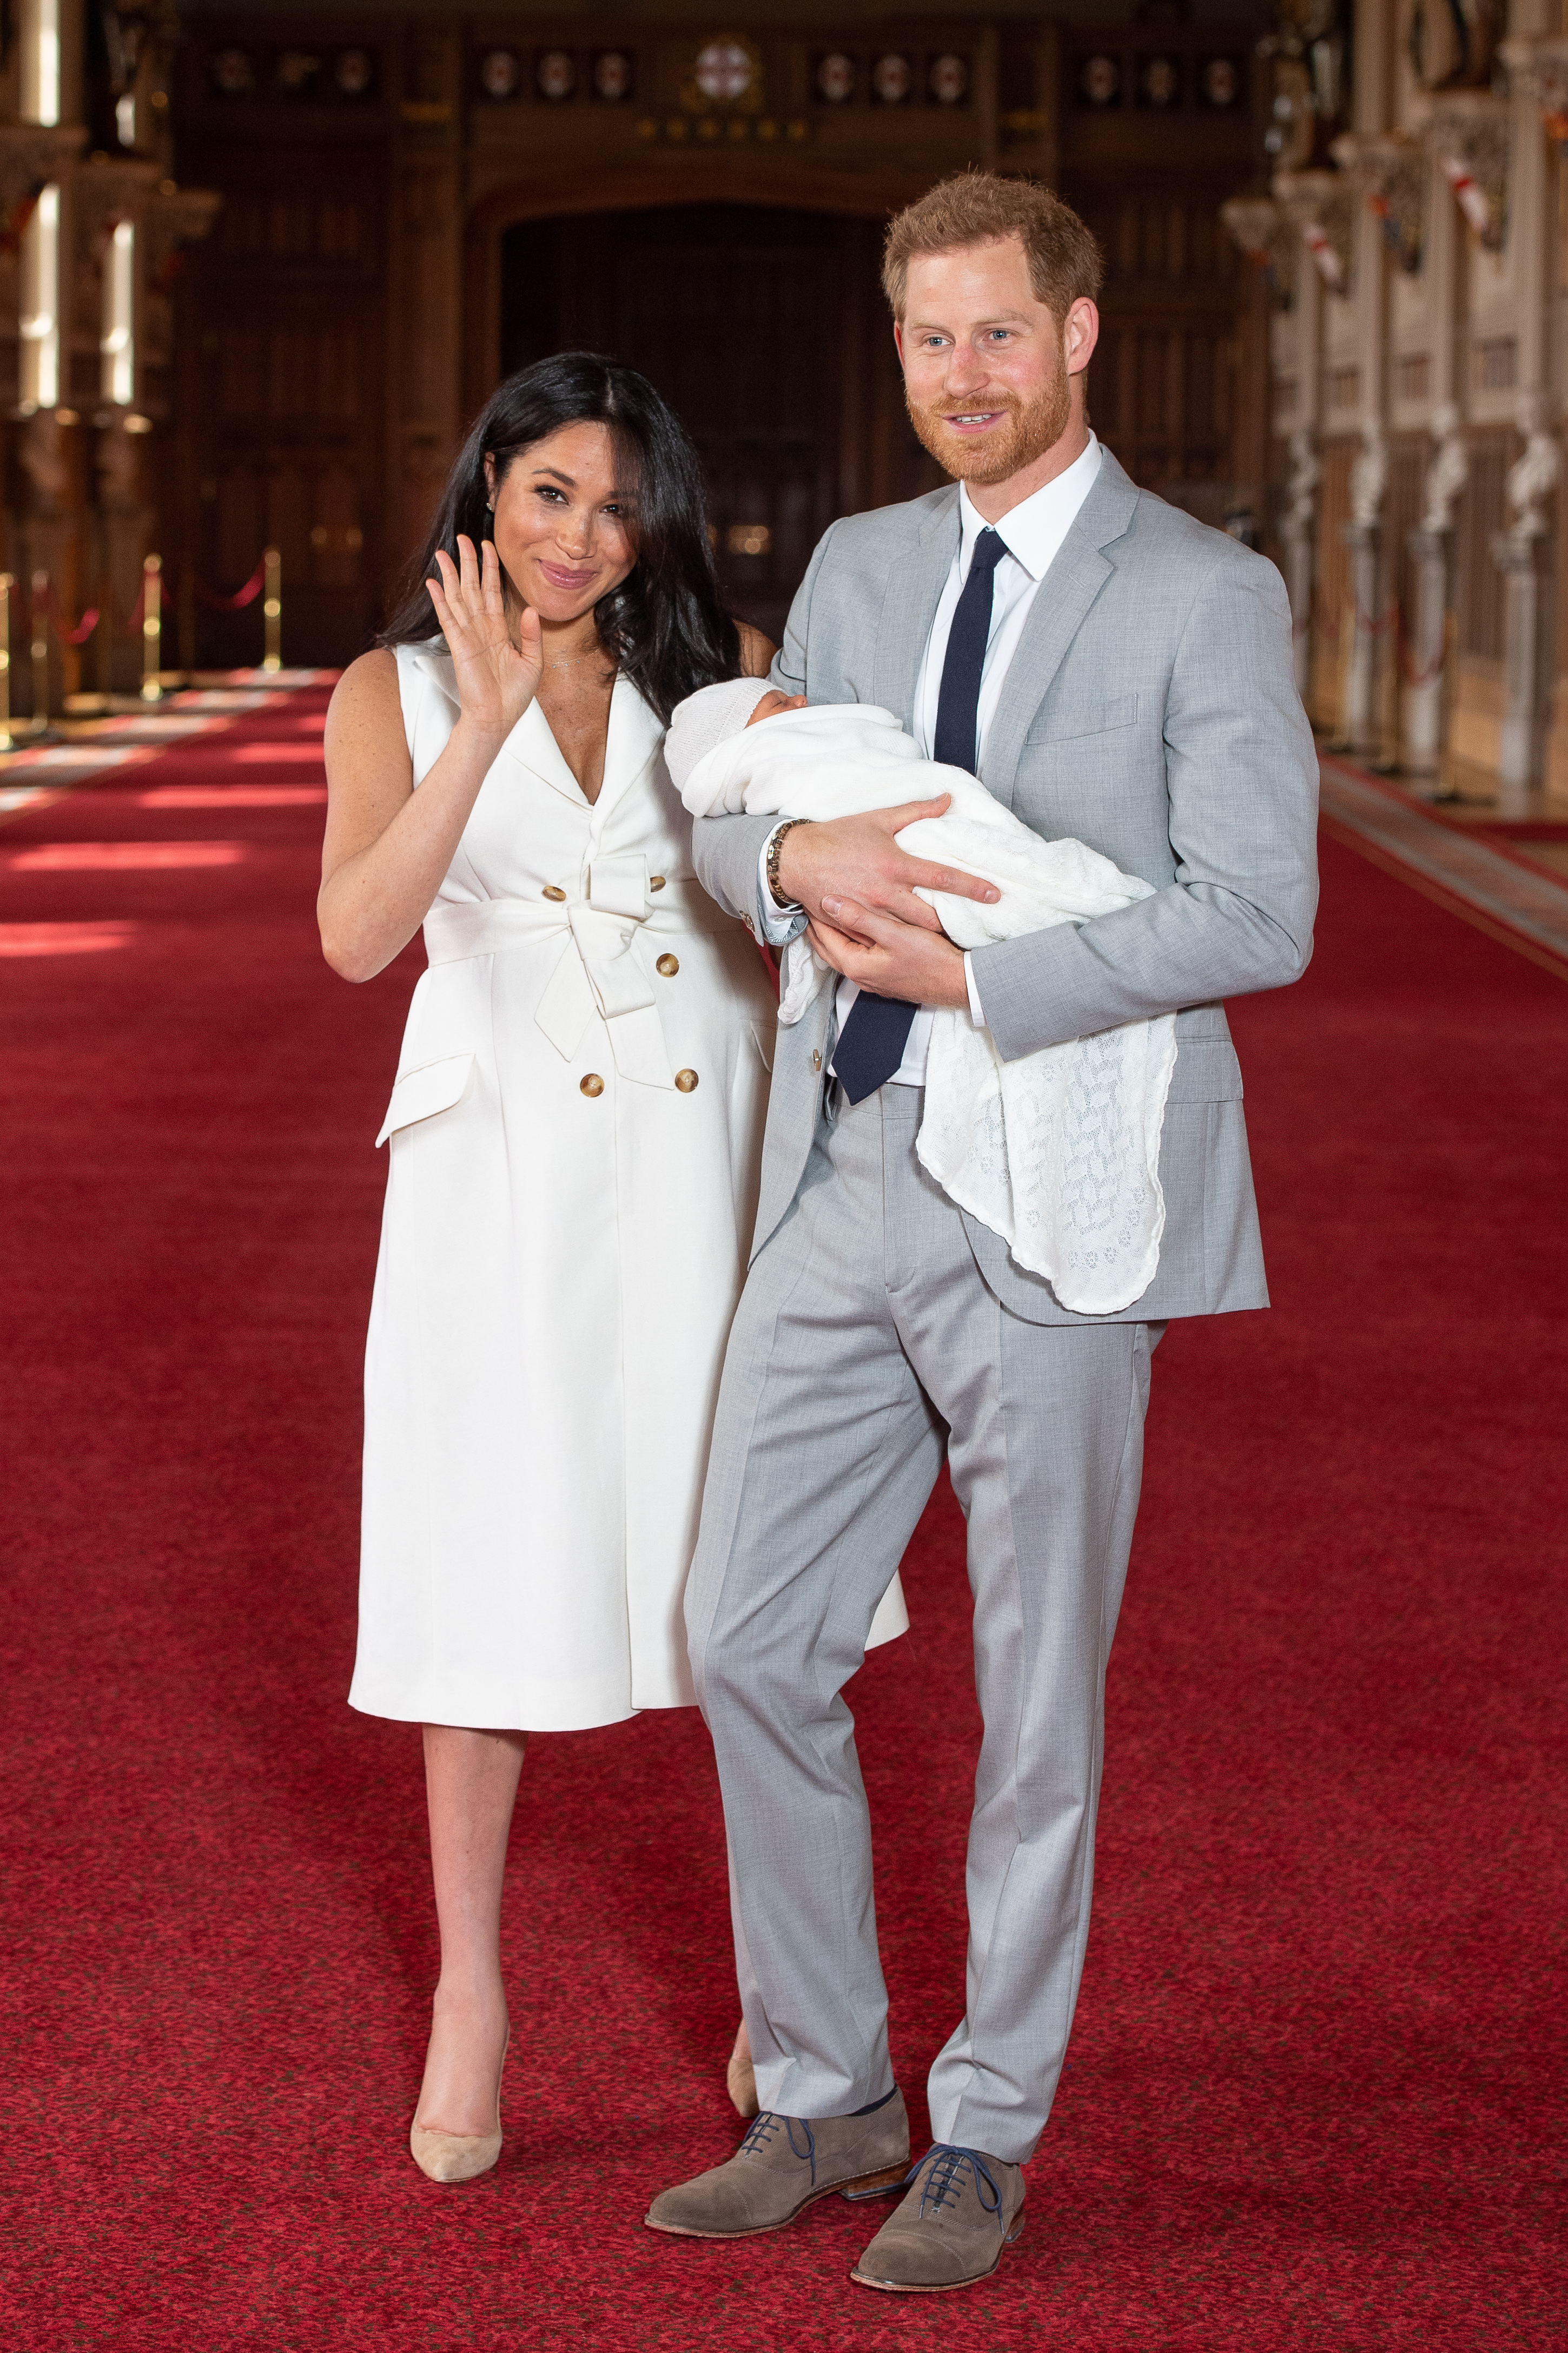 meghan markle, duchess of sussex, holding her son, prince archie, with husband prince harry, duke of sussex